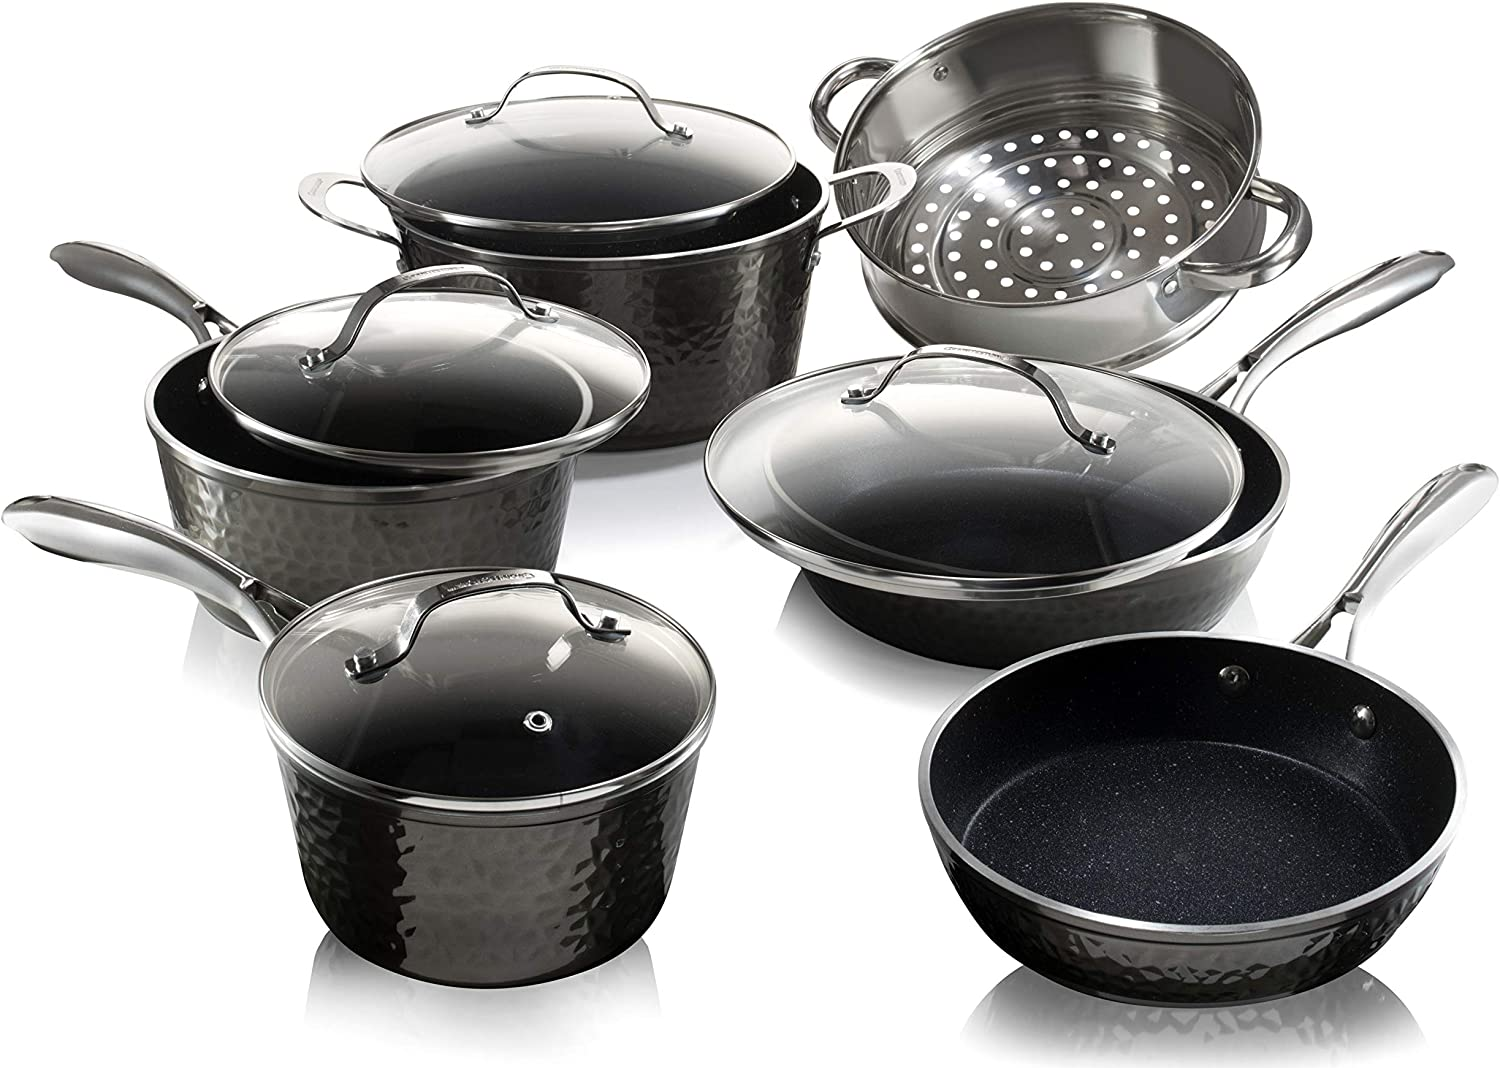 Granitestone Diamond 10 Piece Nonstick Pots and Pans Set with Platinum Hammered Exterior, Mineral & Diamond Infused Ultra Nonstick, Dishwasher Safe Cookware Set, Induction Capable, As Seen on TV